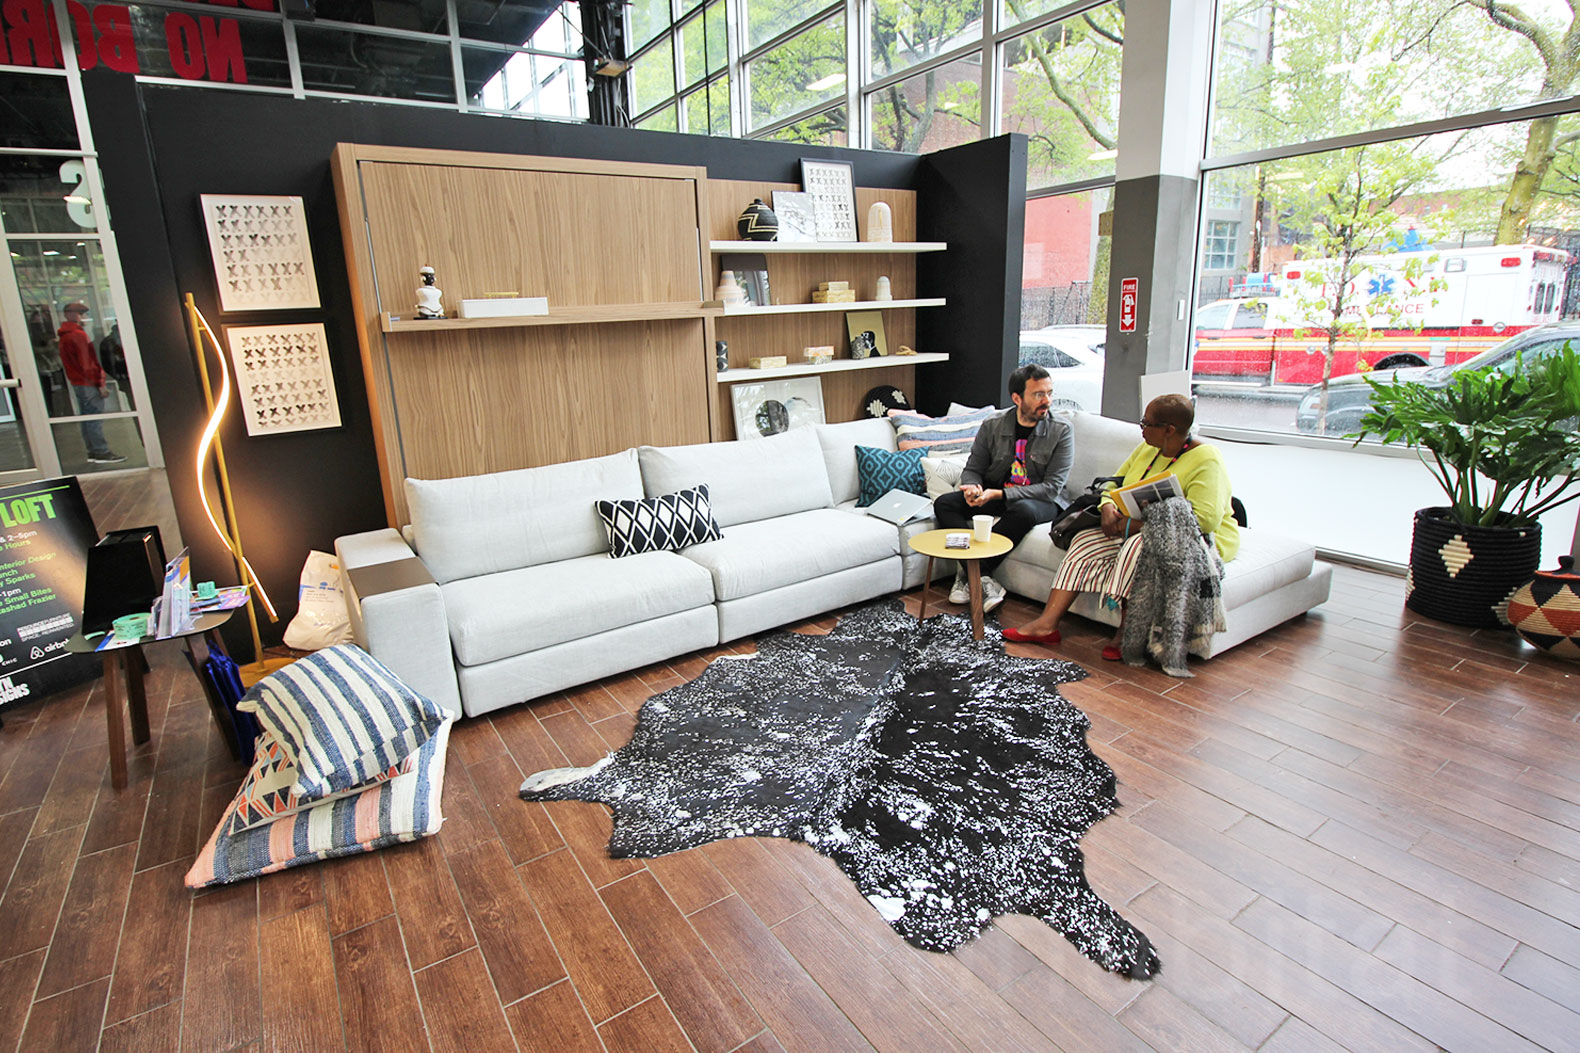 Living Room Furniture Brooklyn interactive 500-square-foot 'micro loft' shows off small living